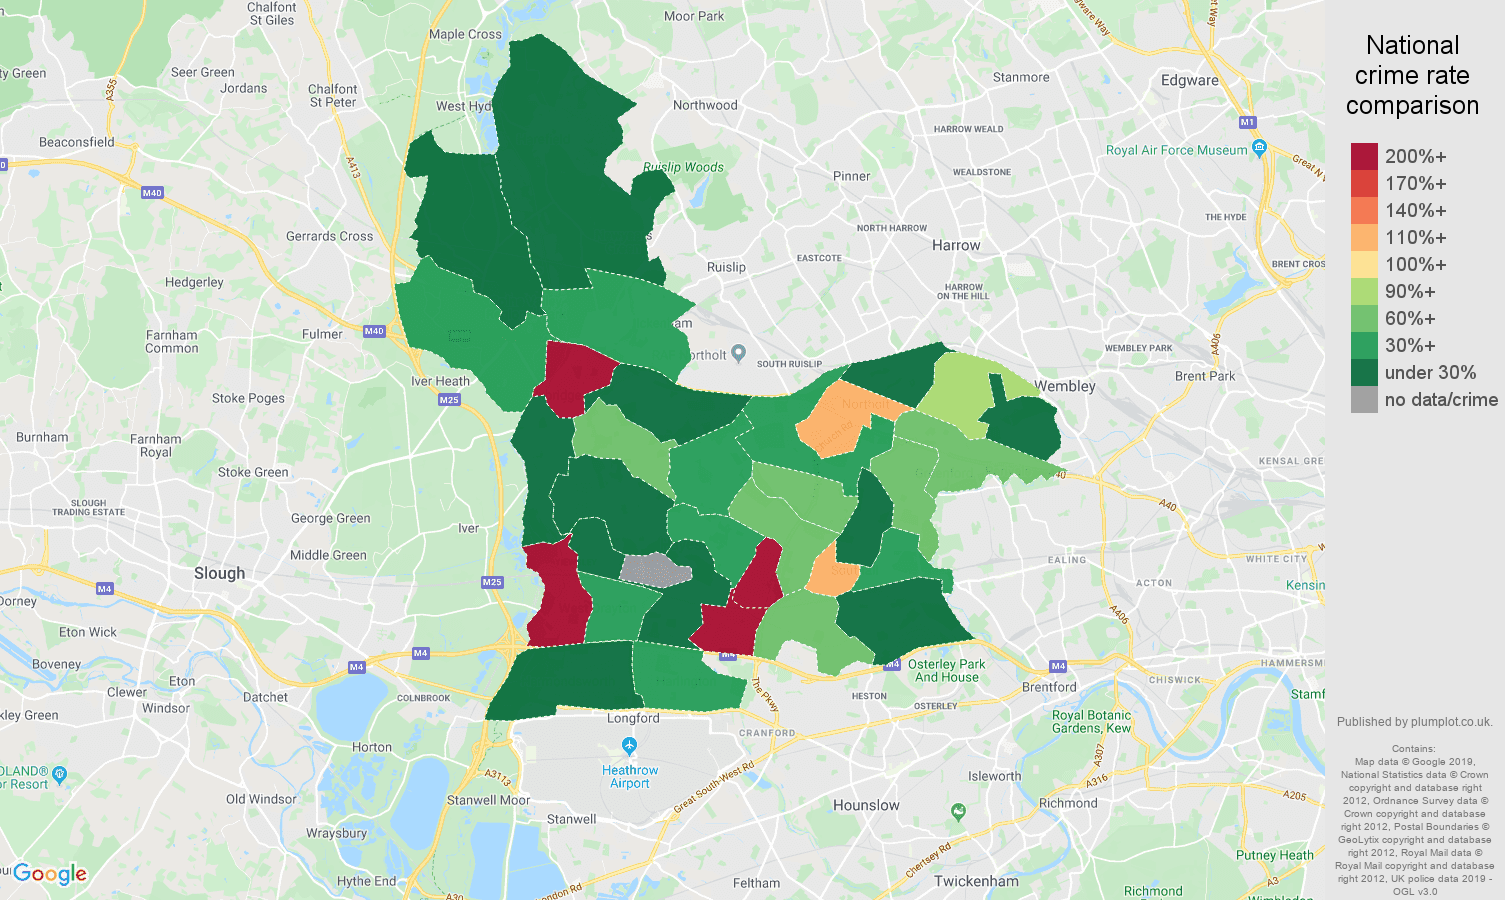 Southall shoplifting crime rate comparison map